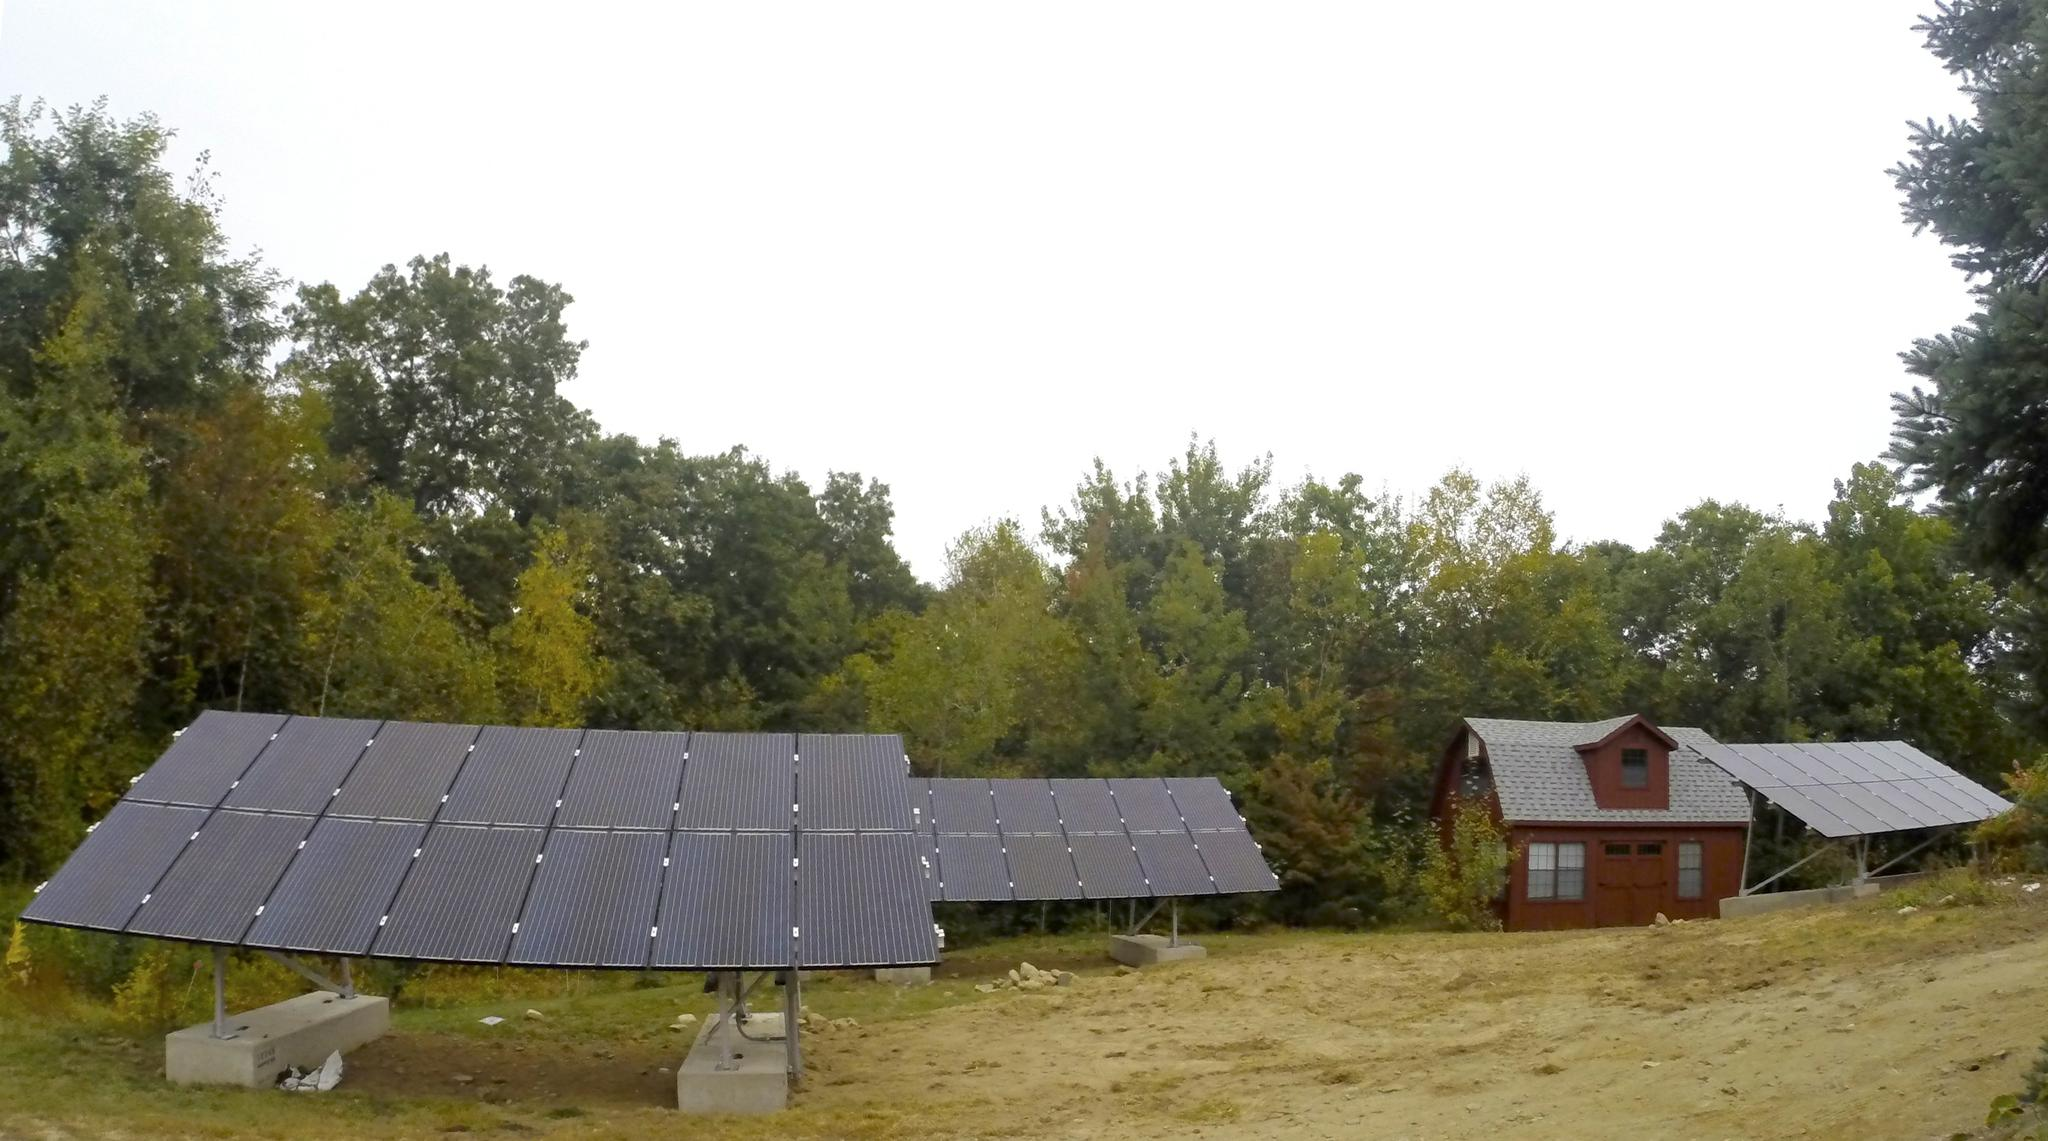 Solarize Tolland Install 35 Energysage